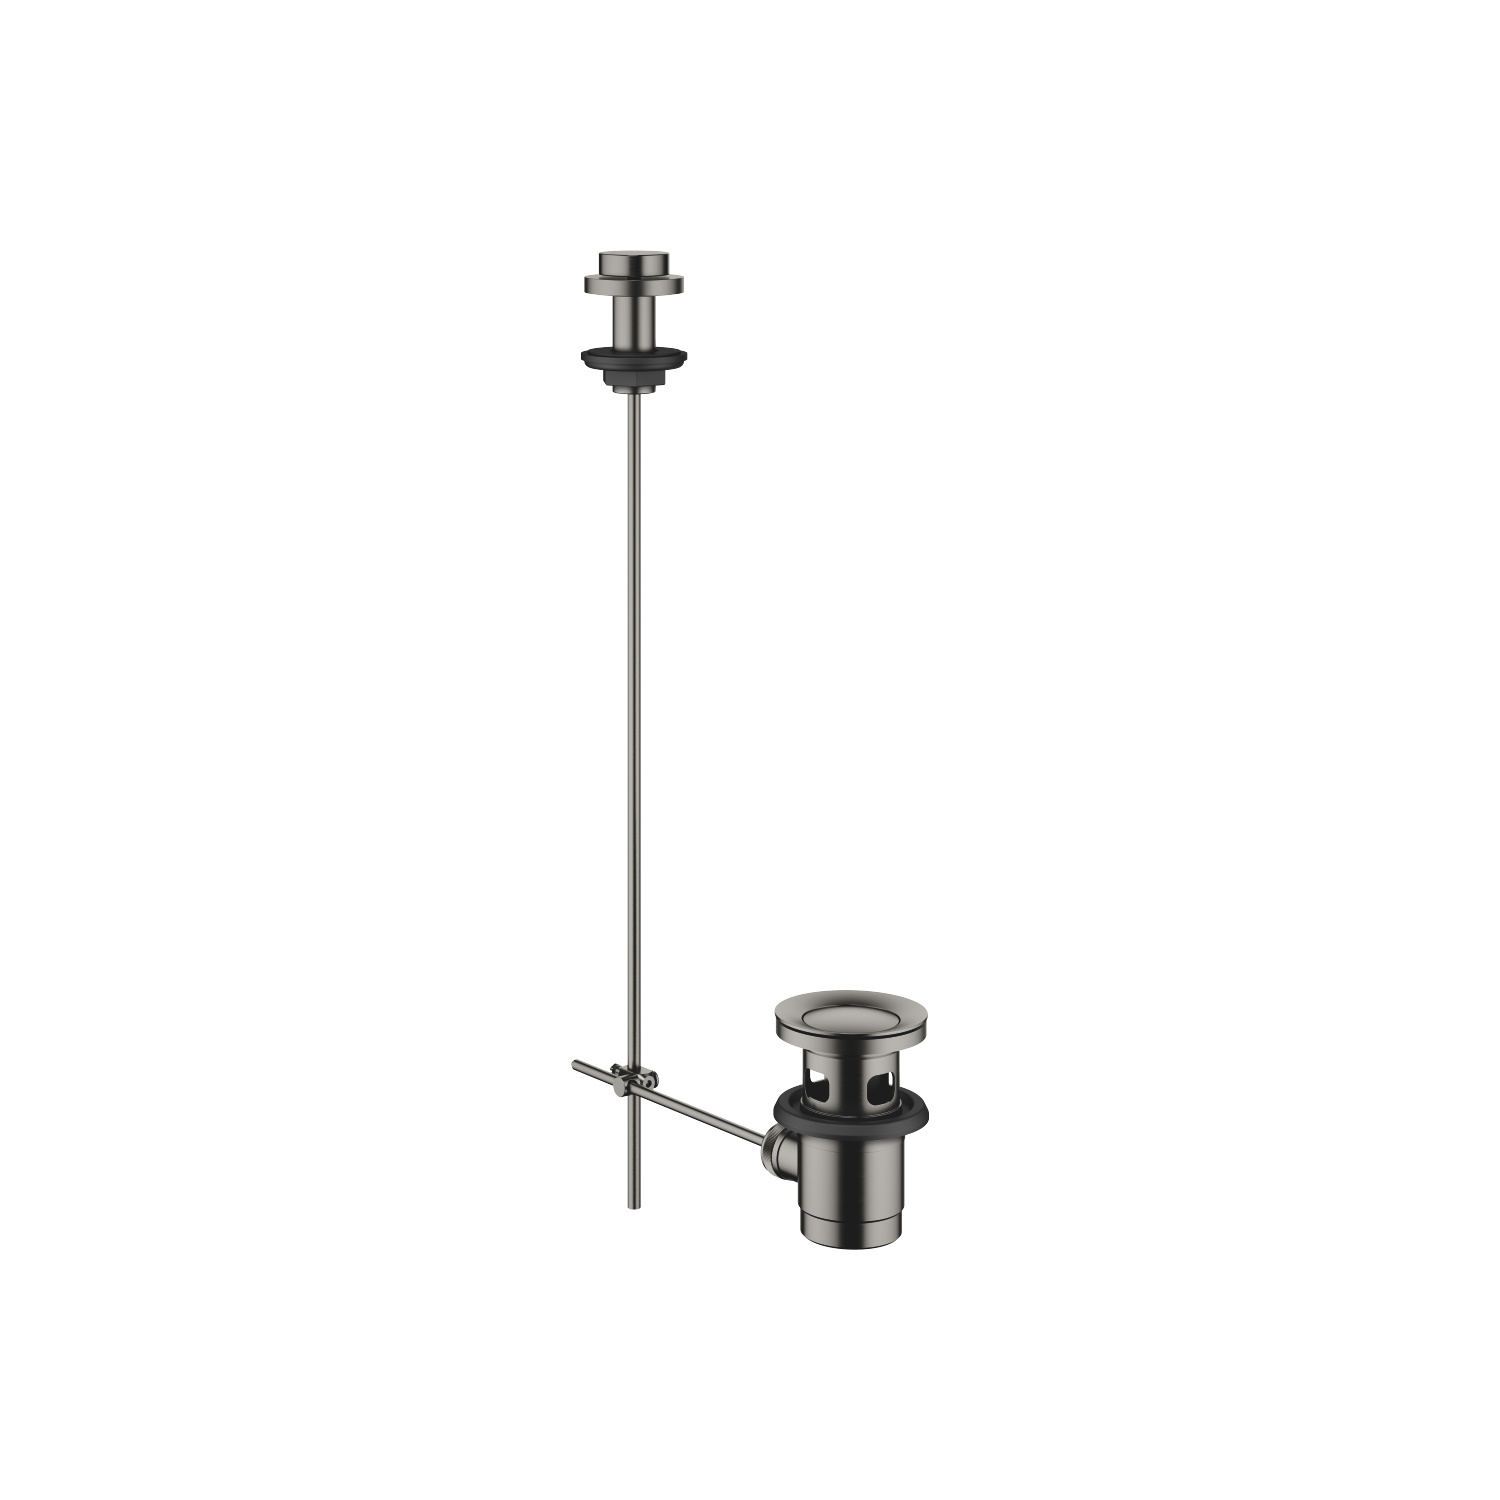 "Basin Waste with knob for deck mounting 1 1/4"" - Dark Platinum matt"